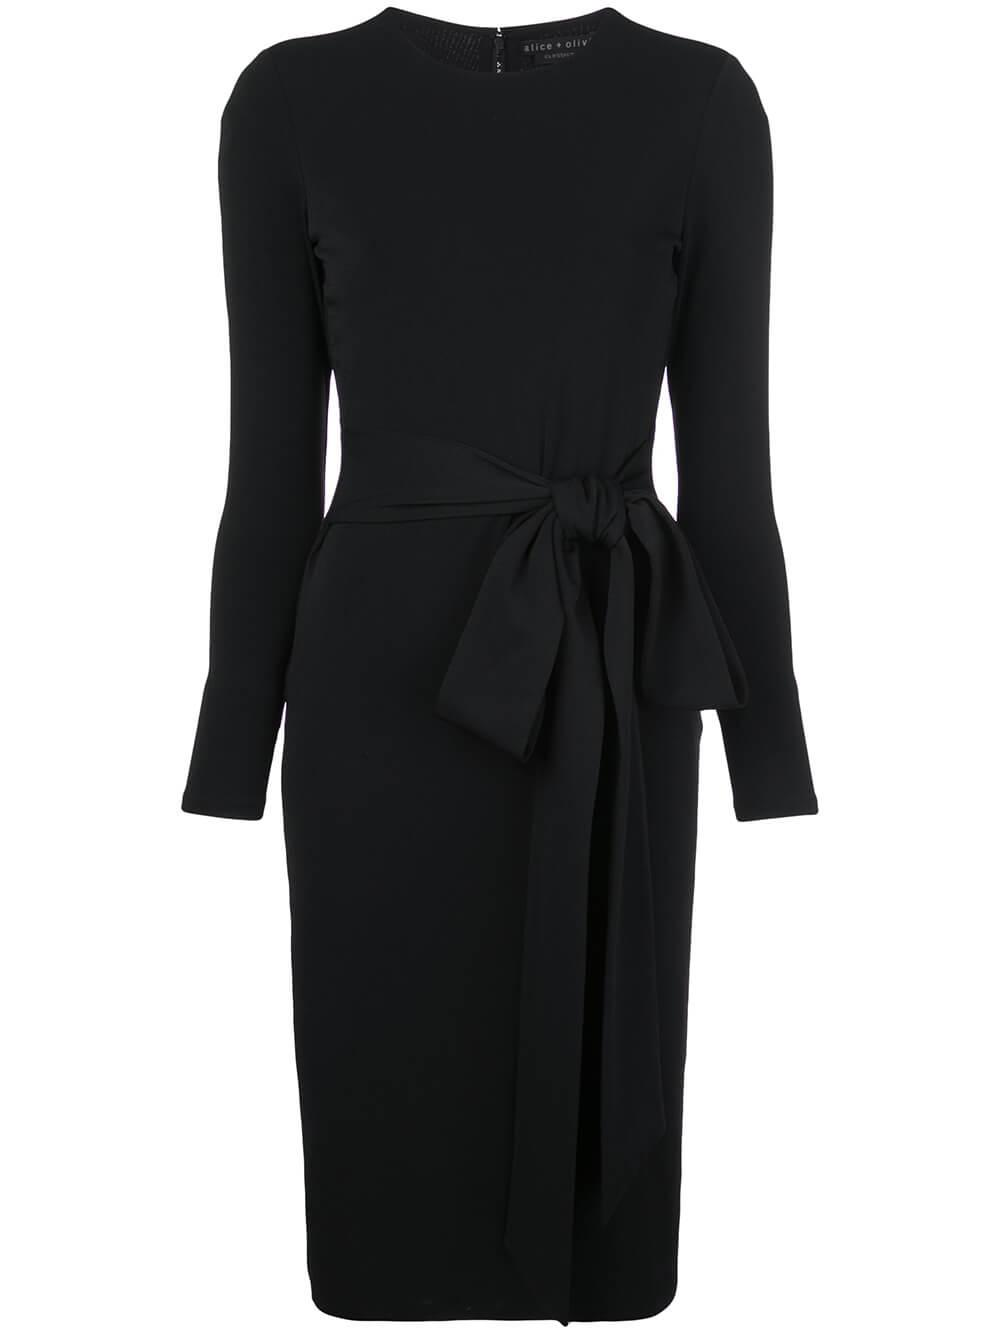 Delora Long Sleeve Tie Waist Dress